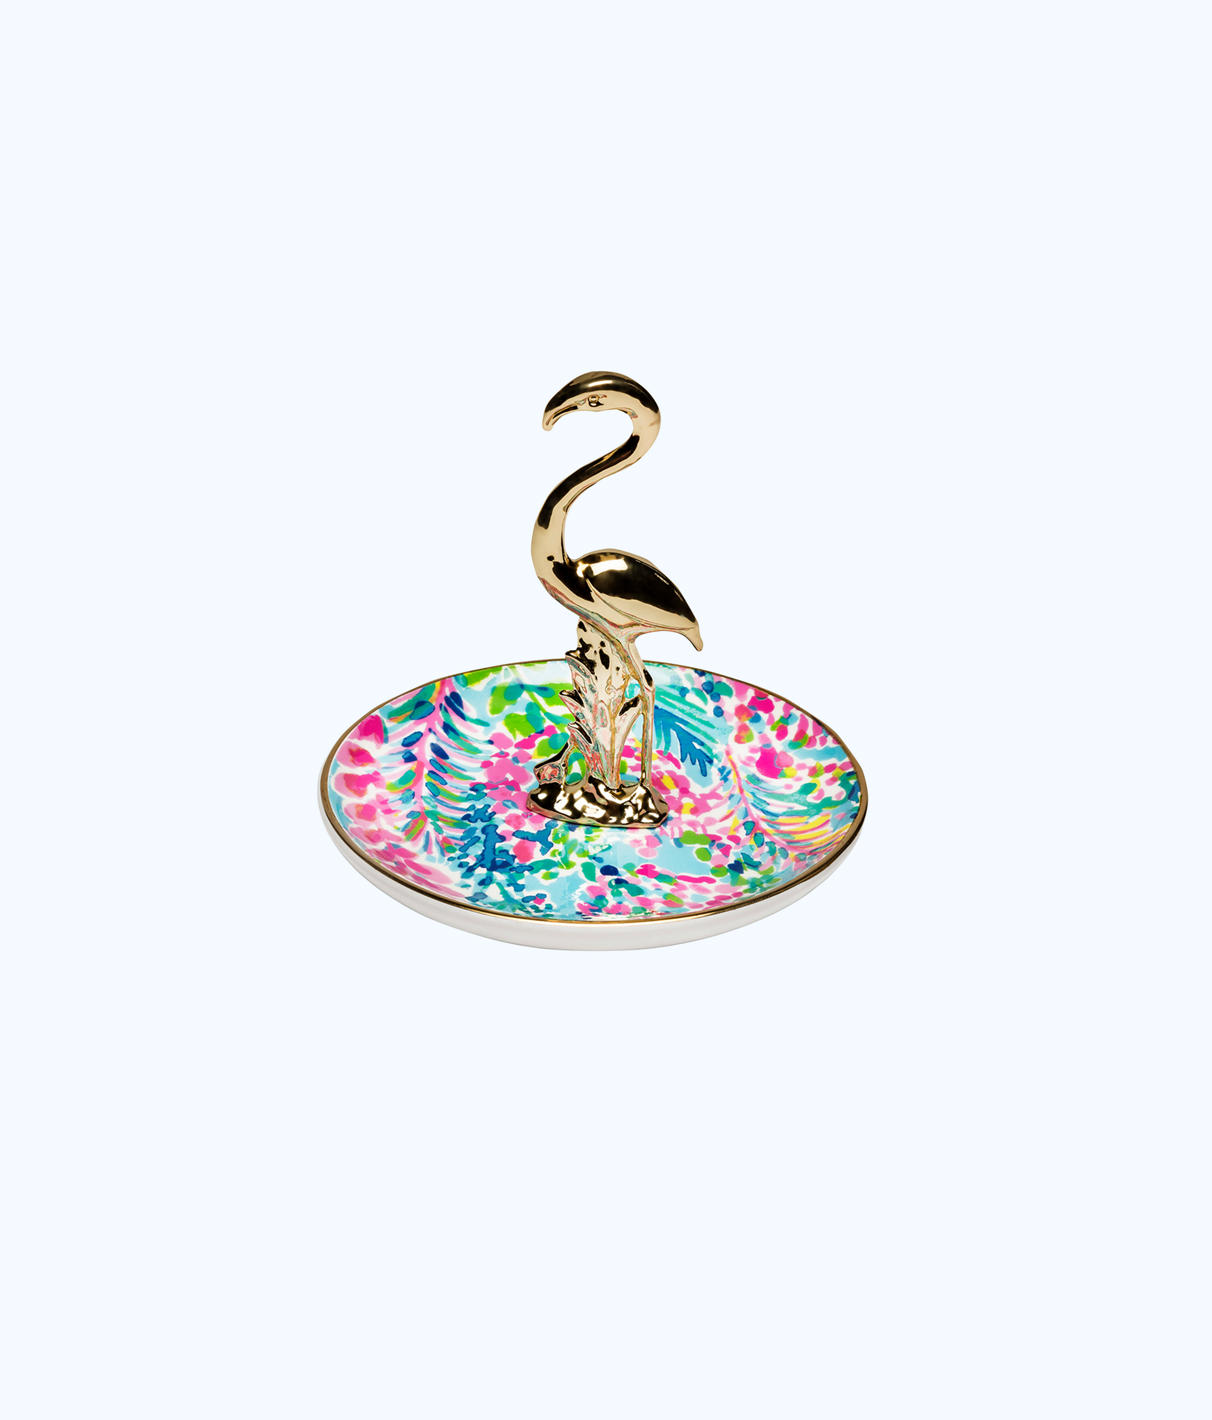 Lilly Pulitzer Lilly Pulitzer Ring Holder